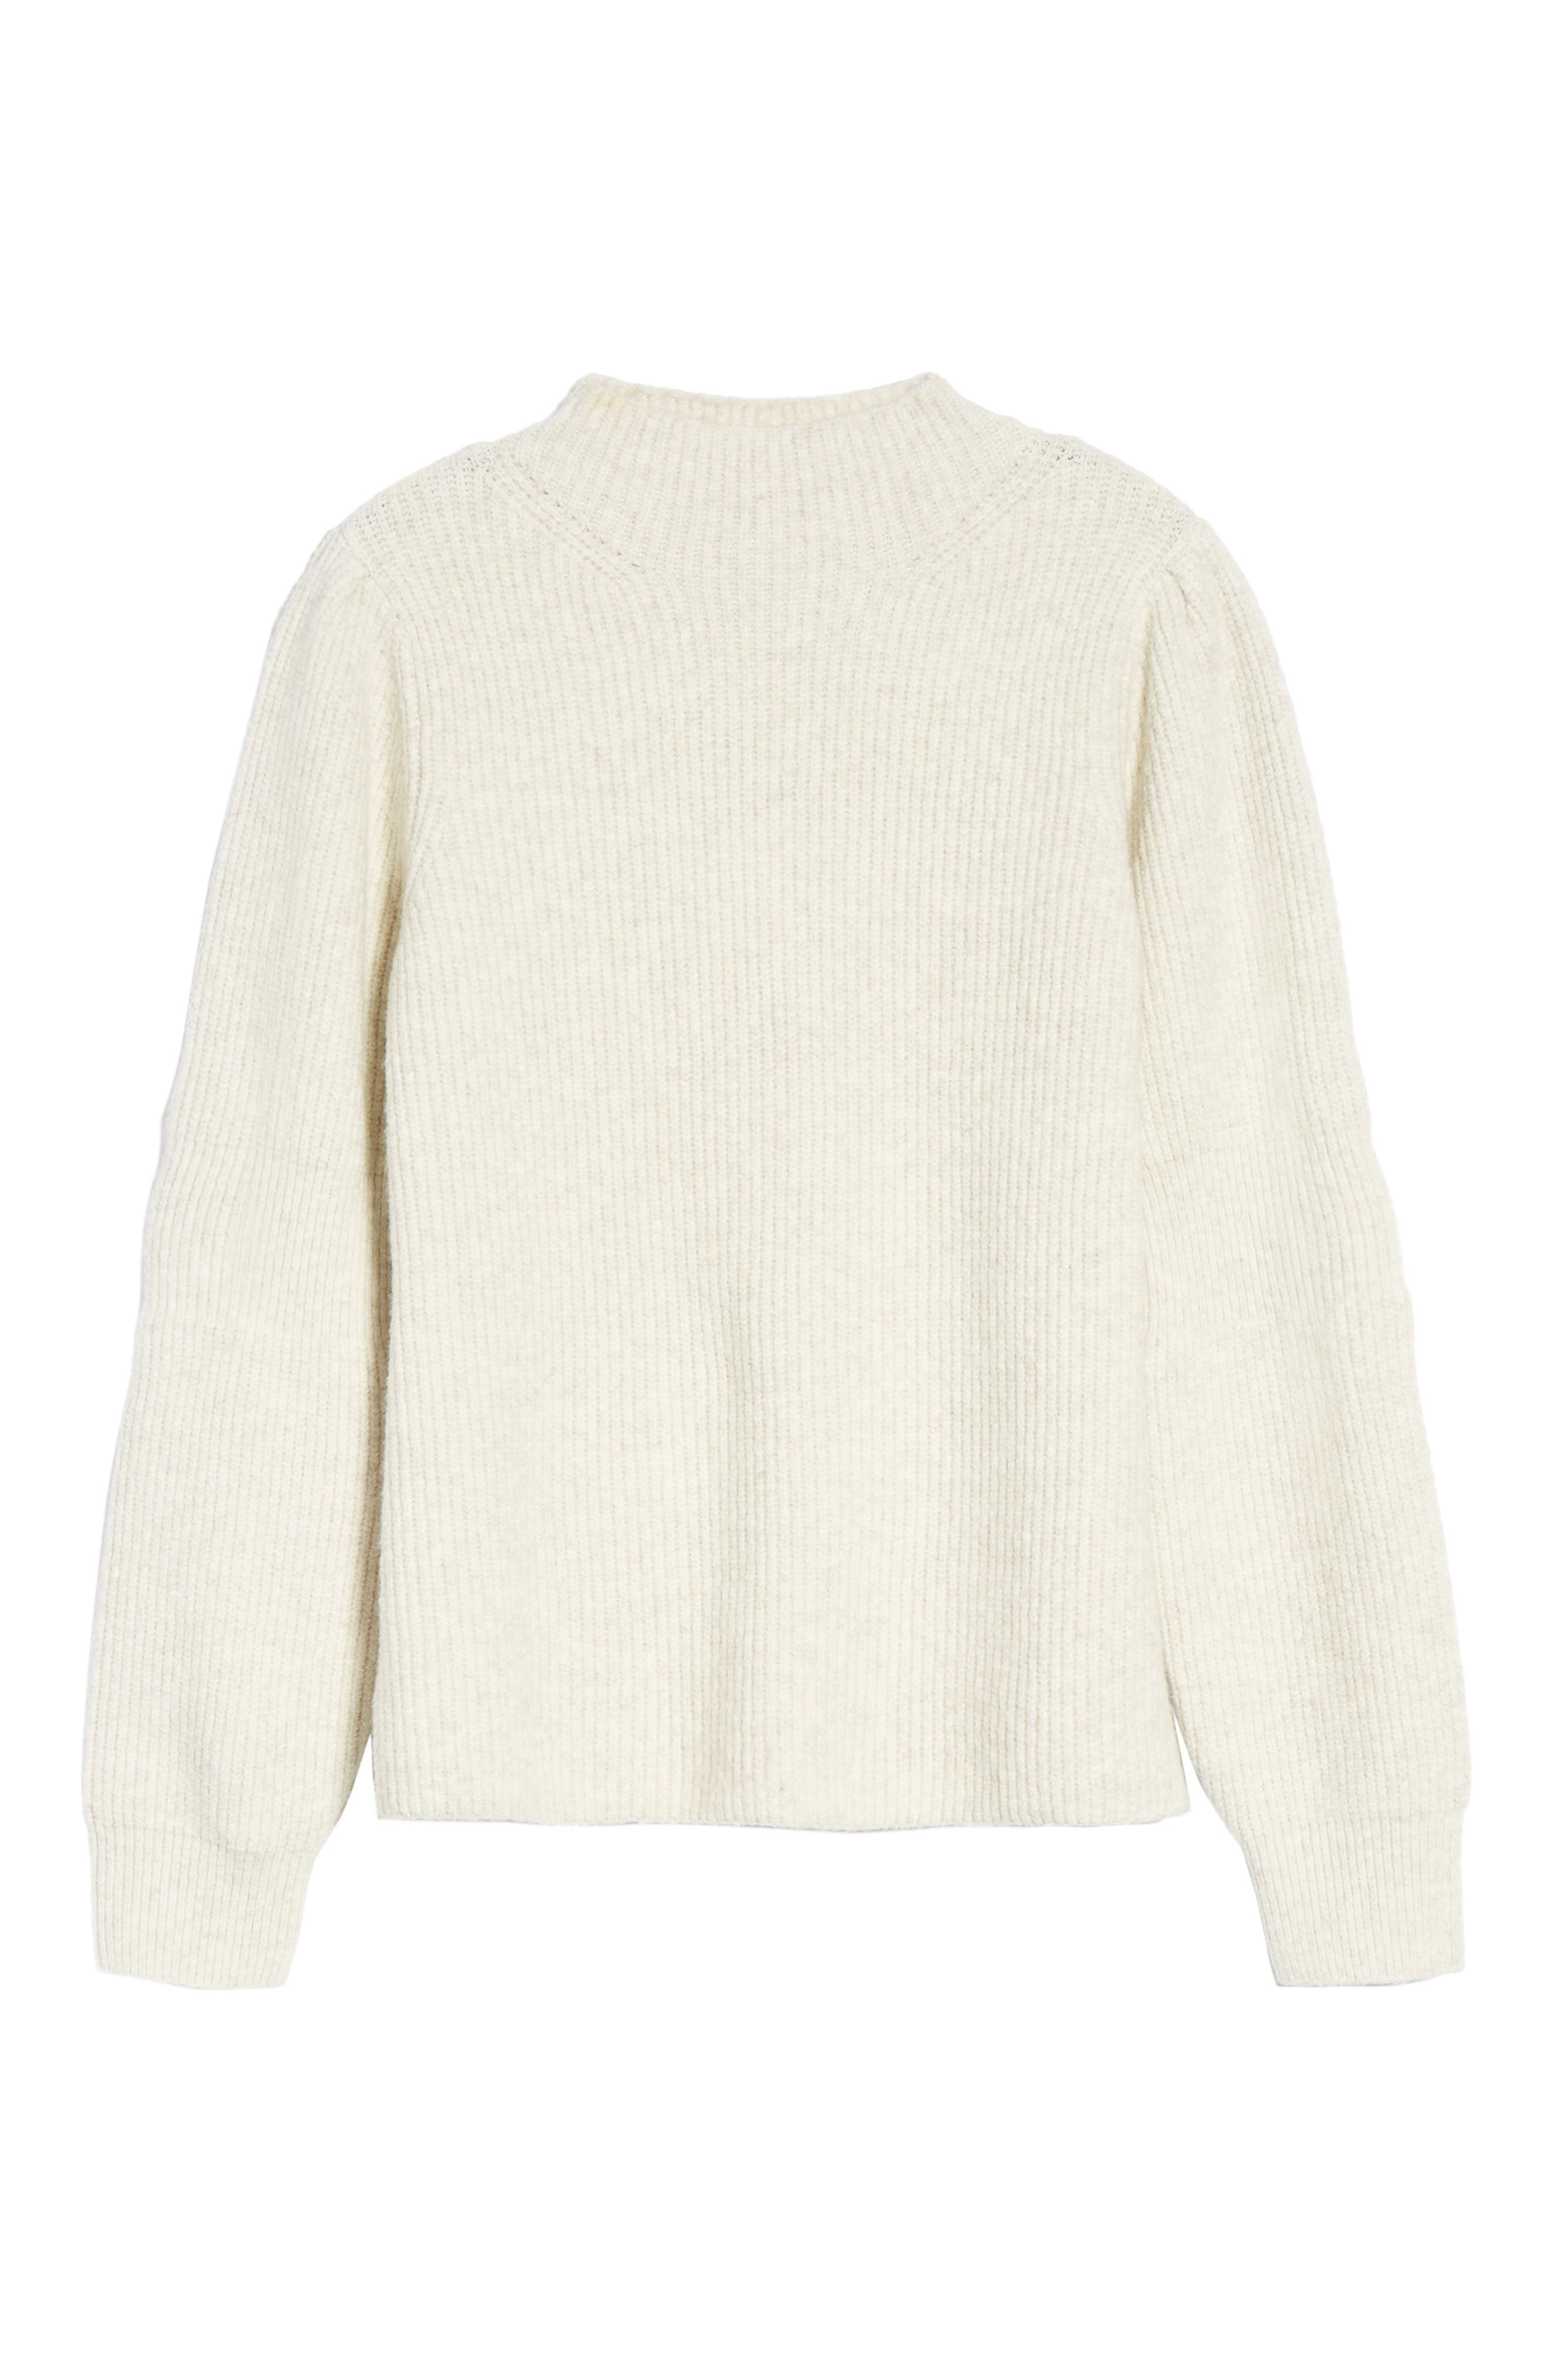 Ribbed Mock Neck Sweater,                             Alternate thumbnail 6, color,                             Beige Oatmeal Heather